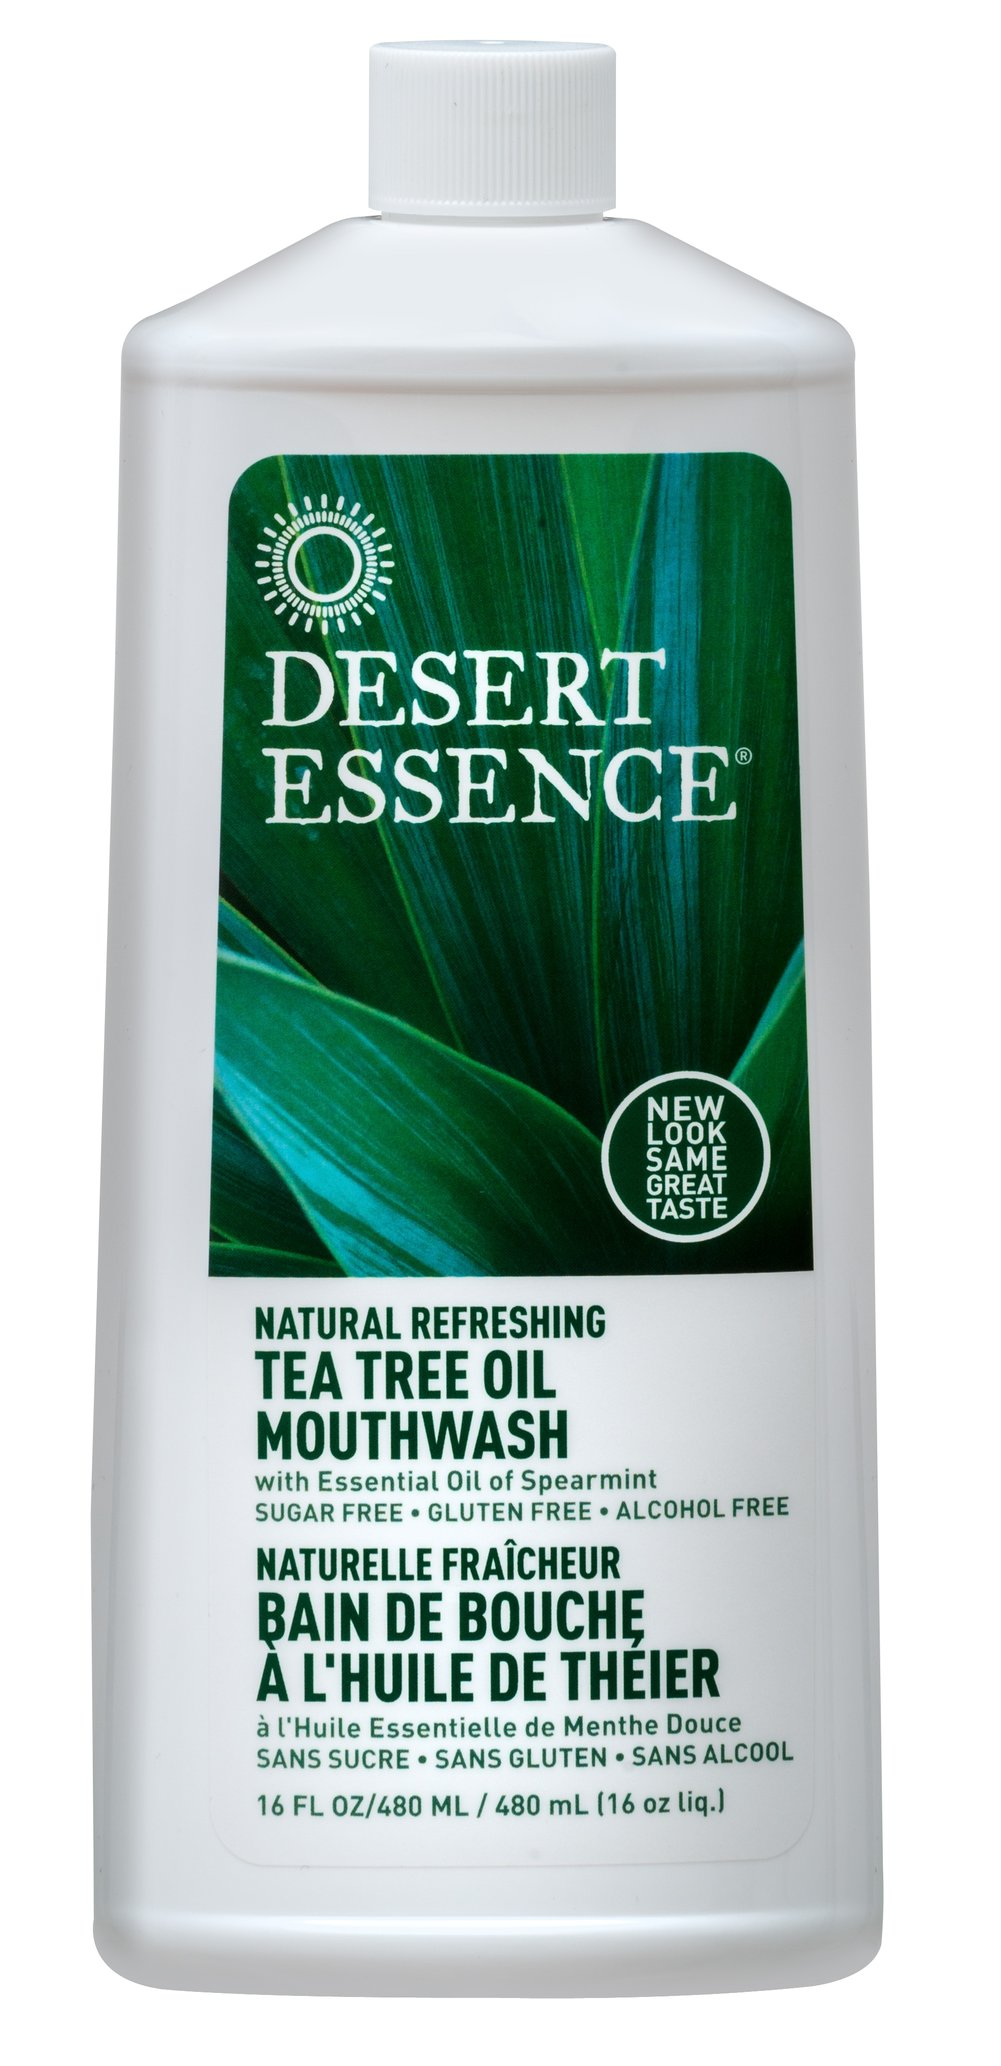 Tea Tree Oil Mouthwash With Spearmint  16 oz Liquid  $5.19